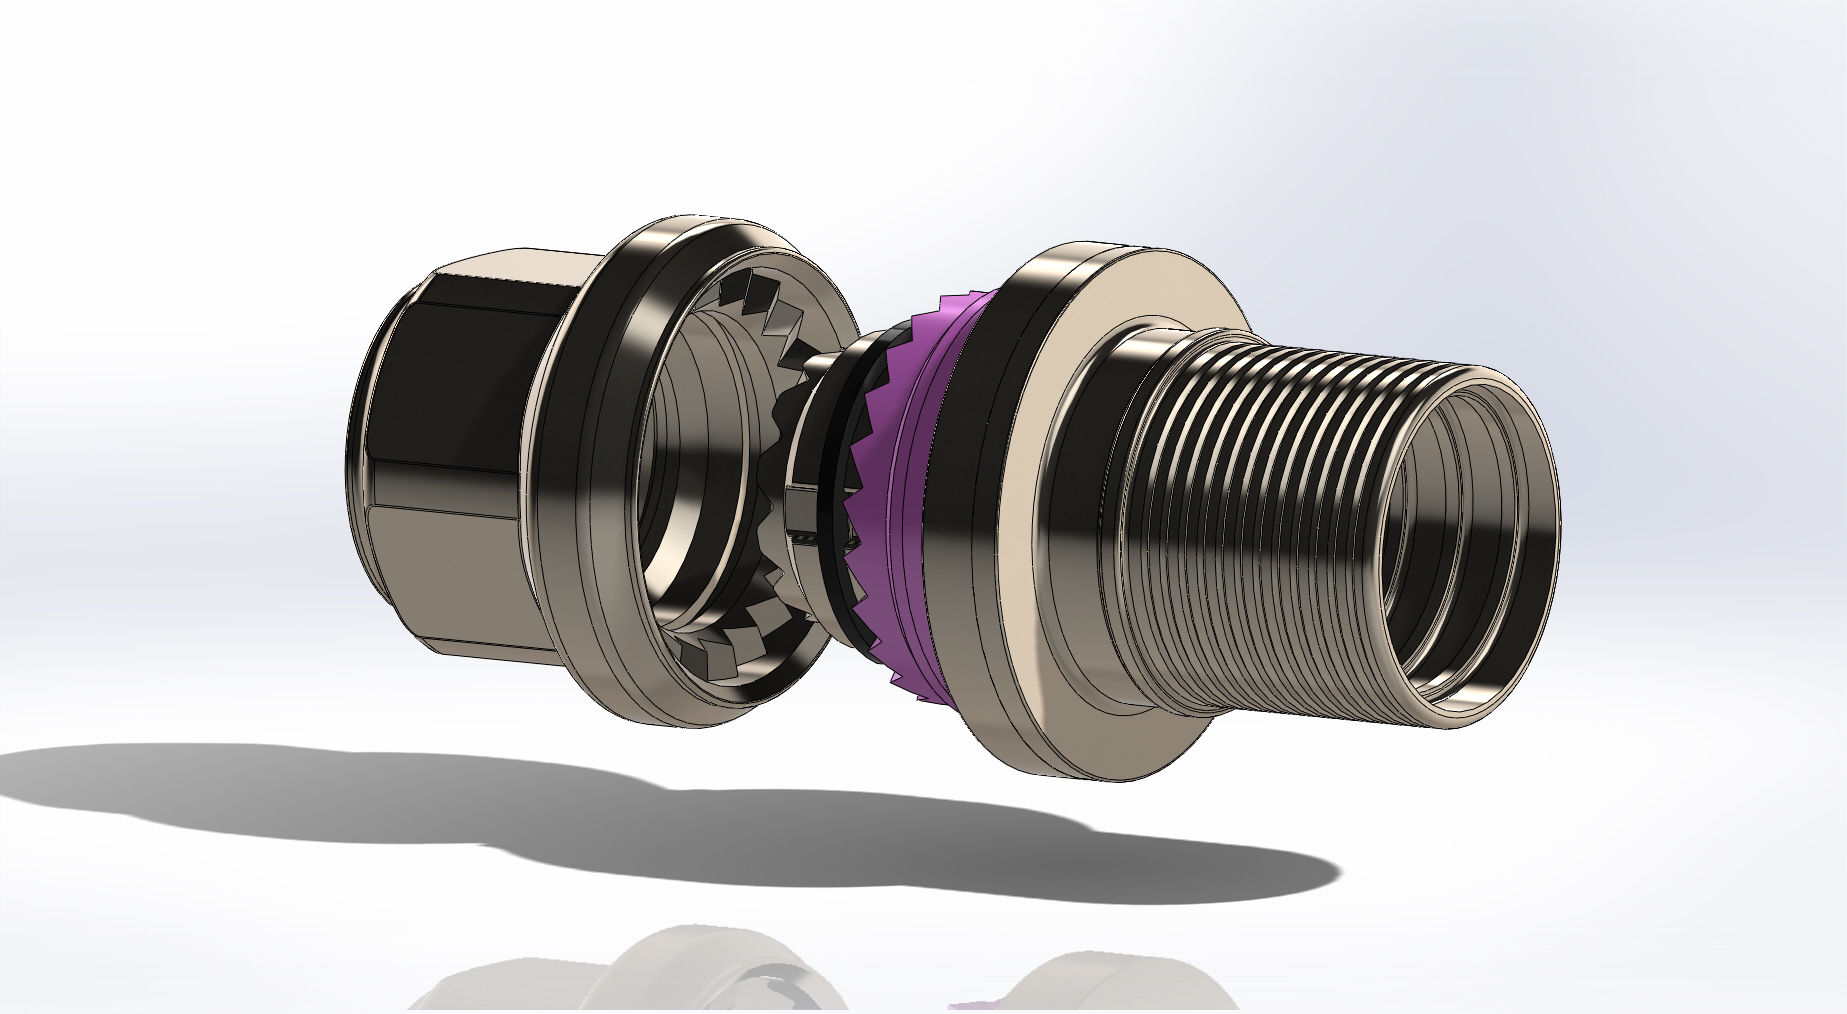 Redesign of straight connectors showing the new ultrasonic welded body and tails